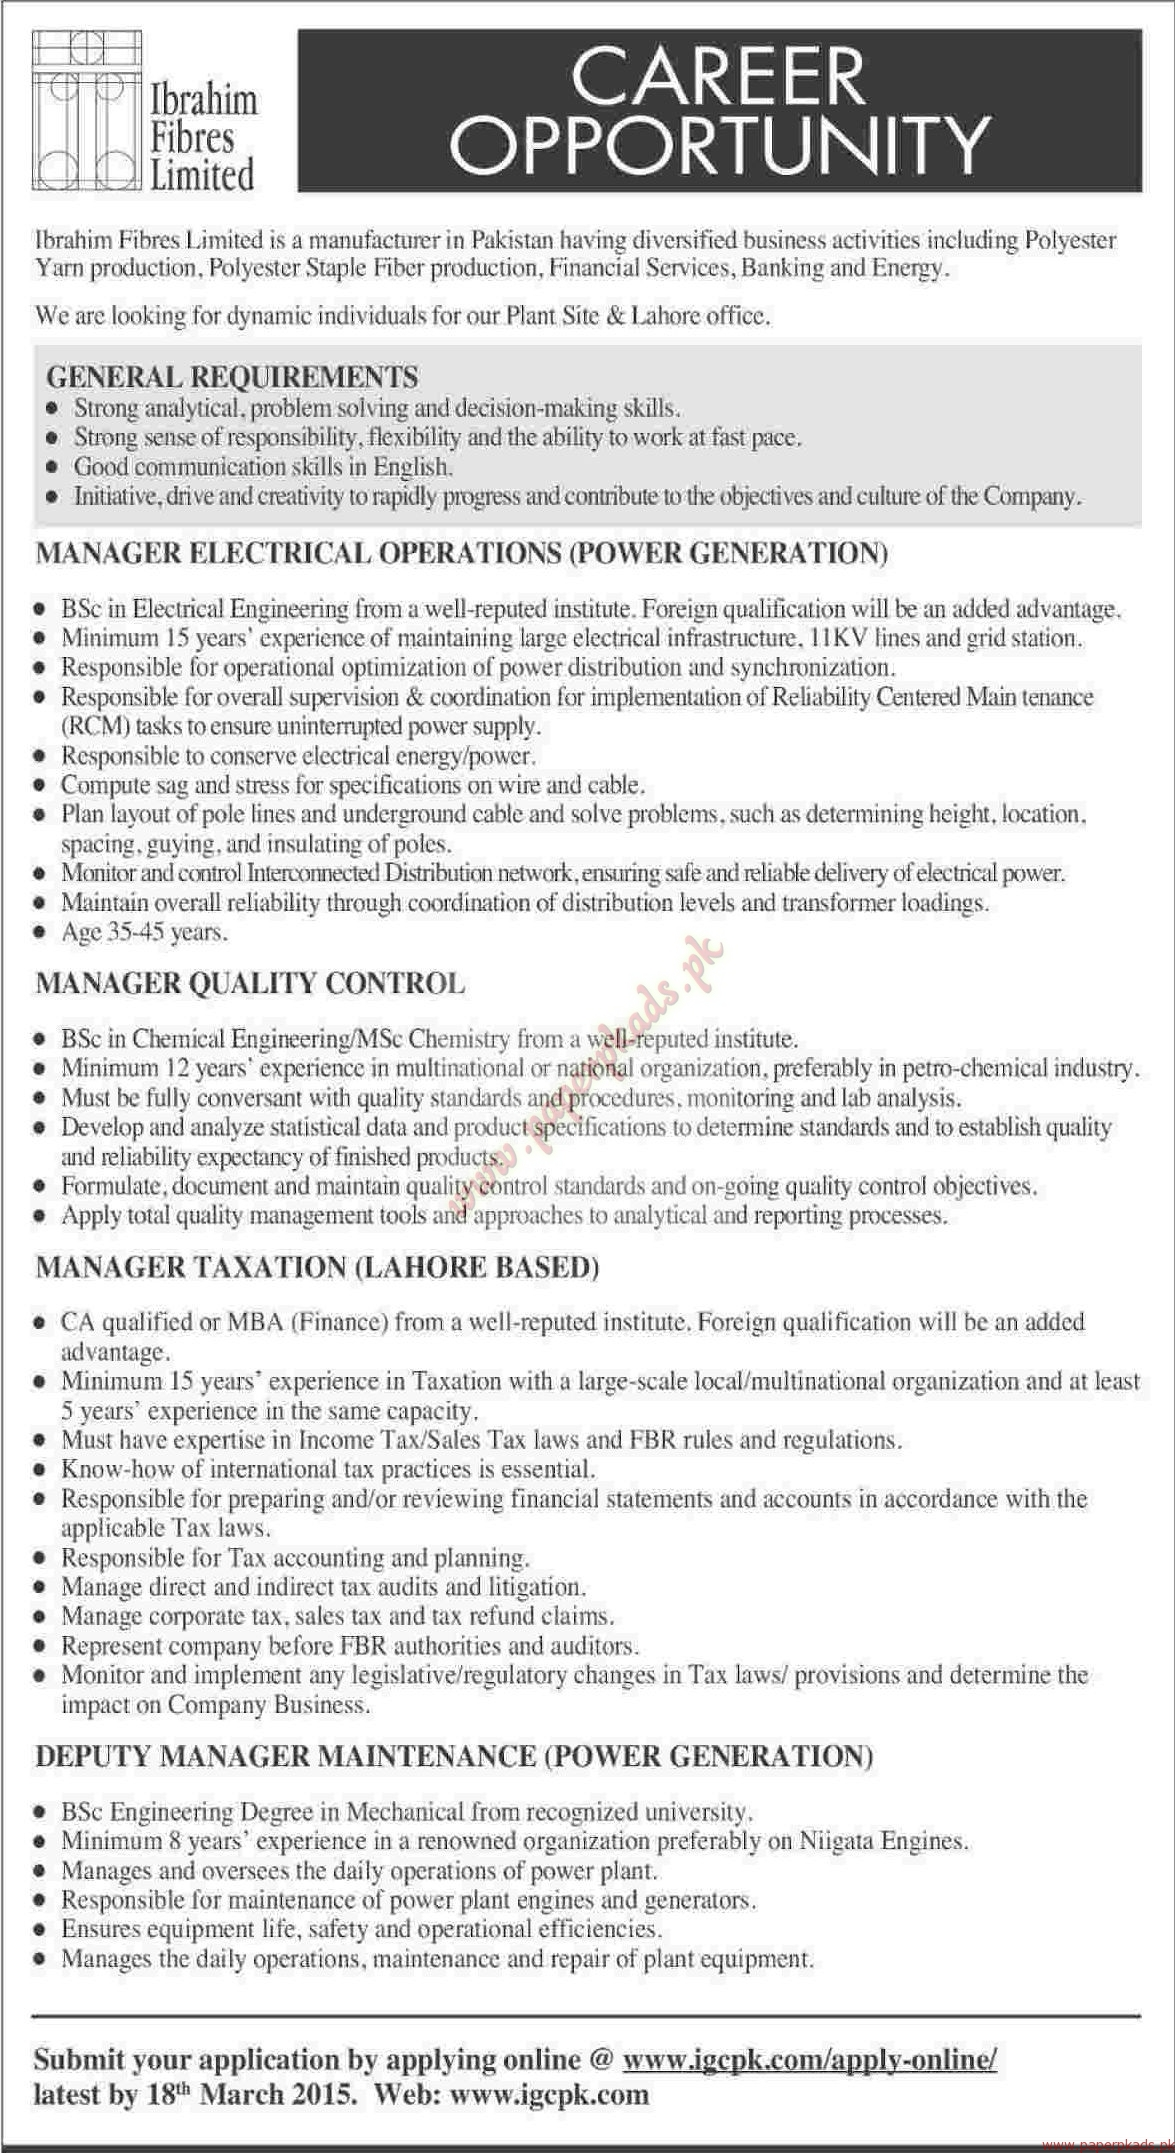 Ibrahim Fibres Limited Jobs Dawn Jobs ads 08 March 2015 PaperPk